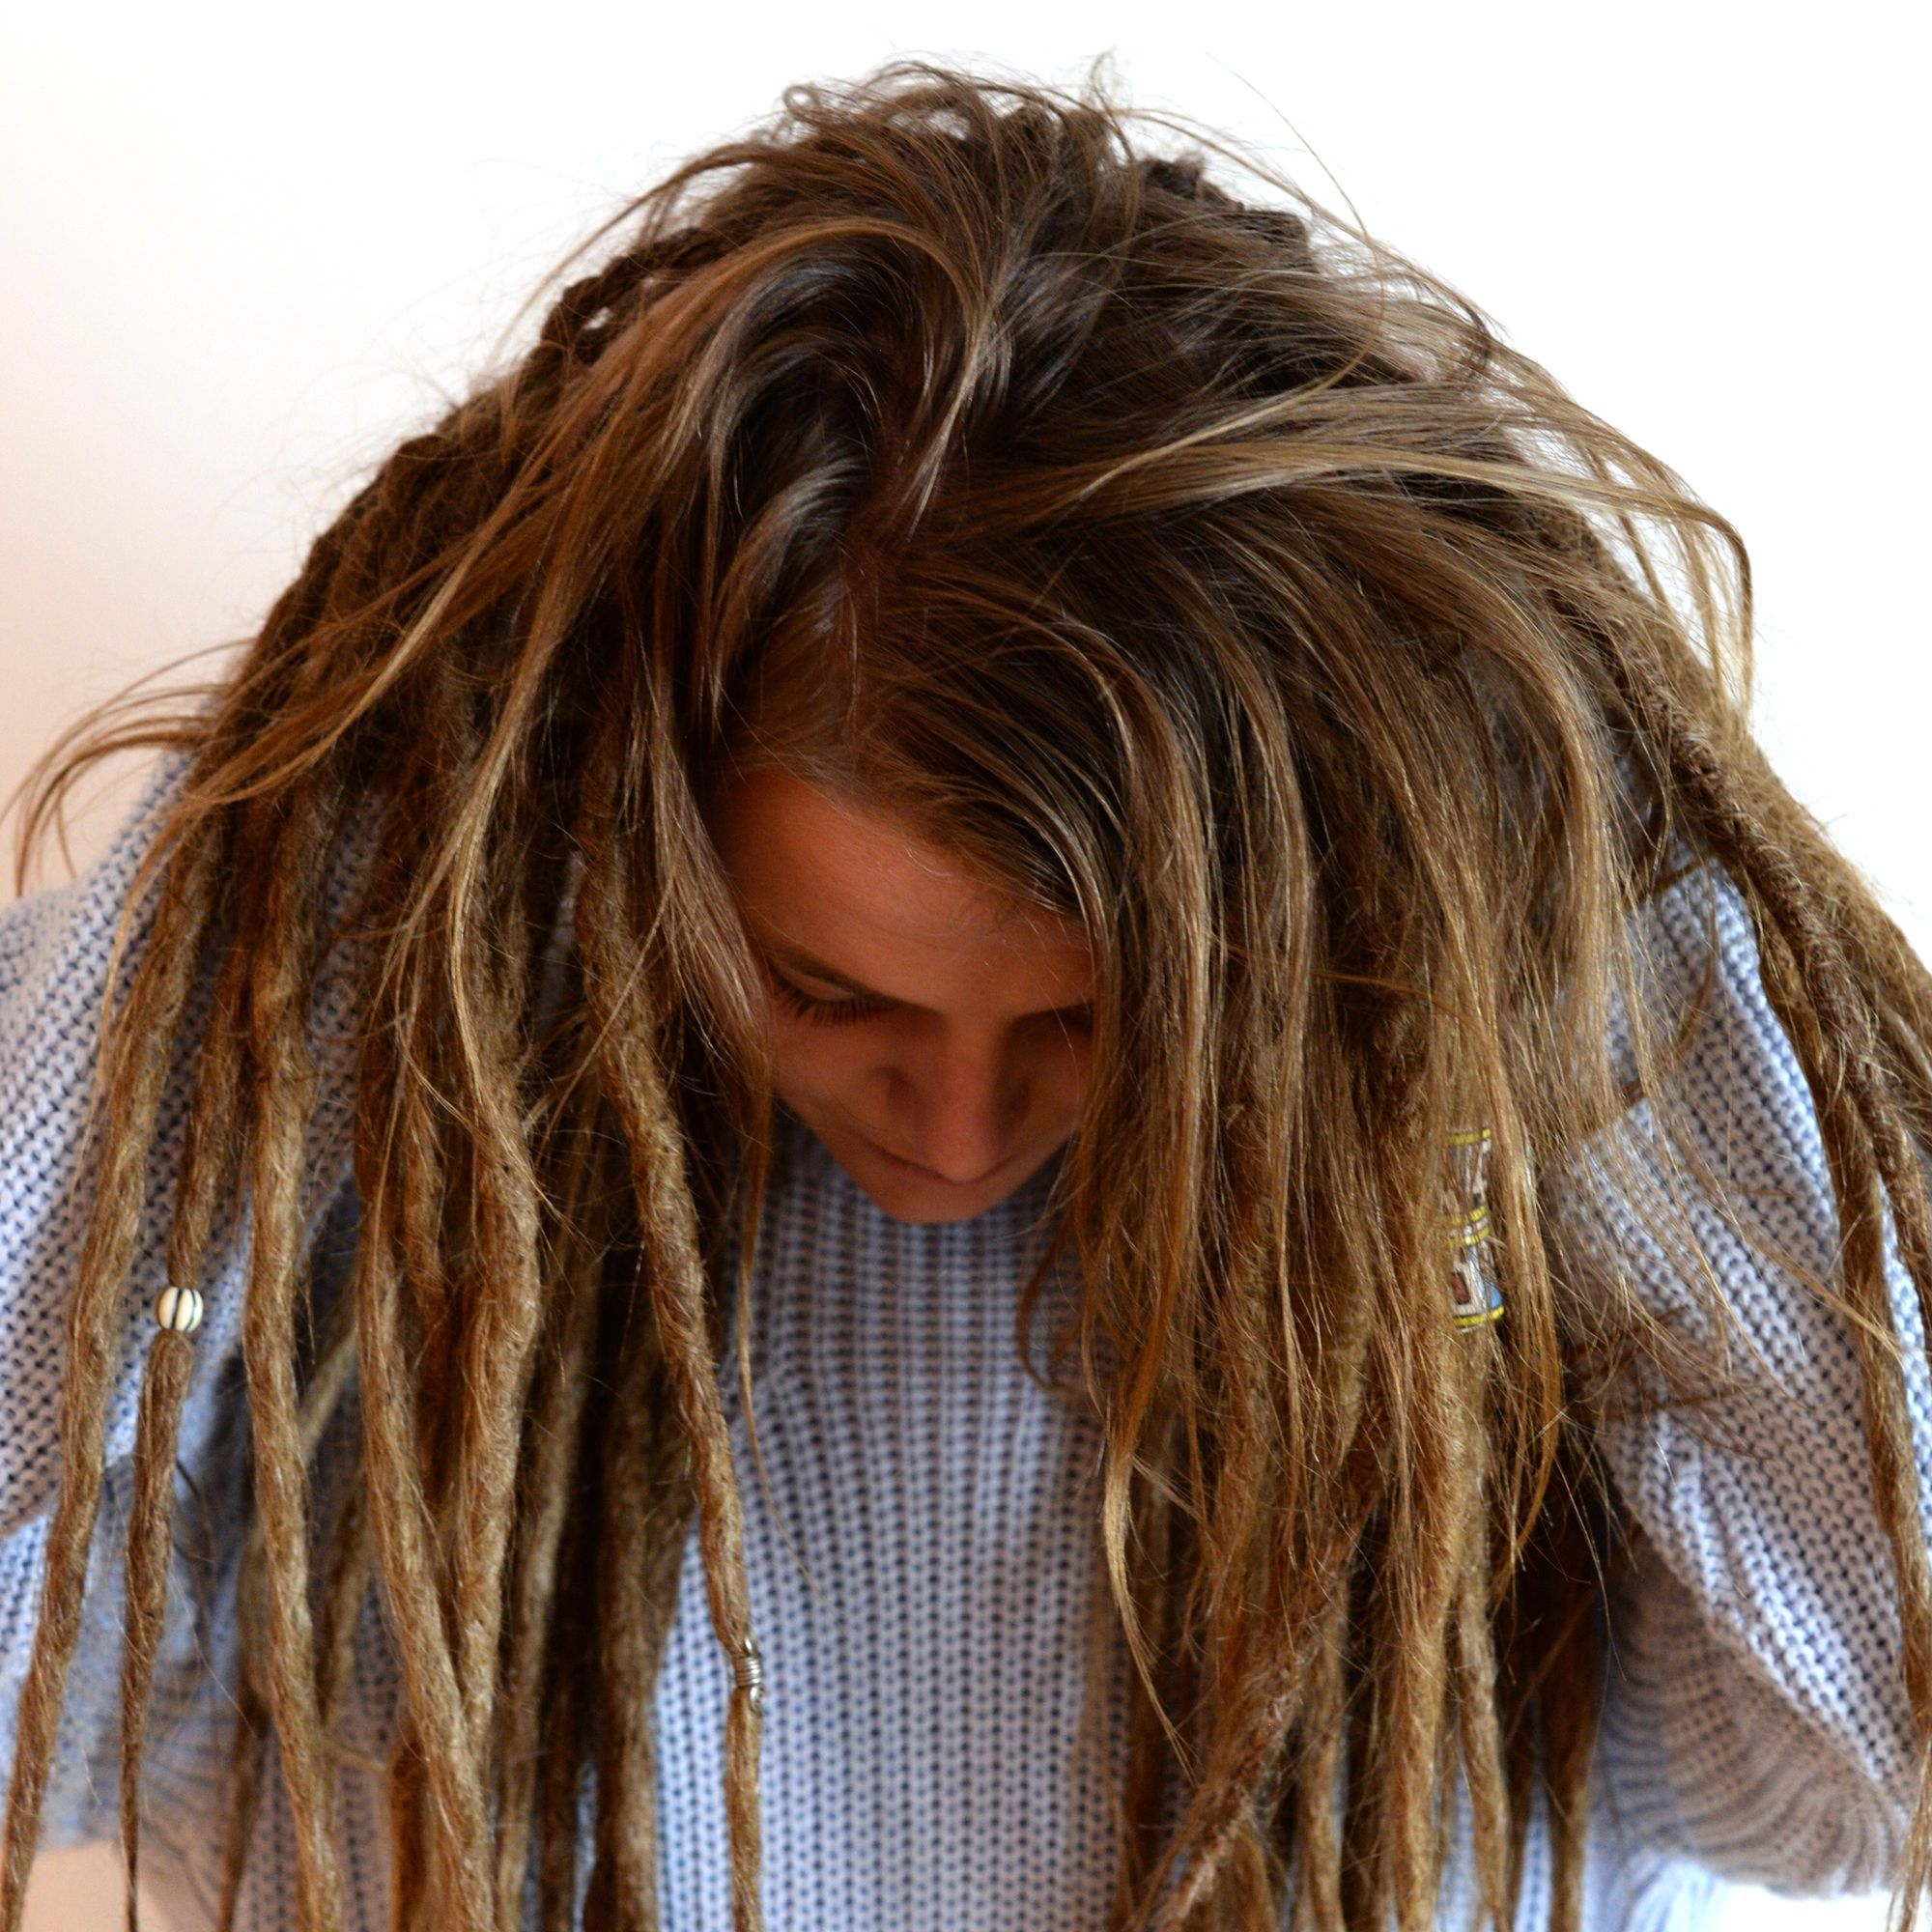 If you want to try a more loose look when it comes to dreadlocks it's possible to jut dread parts of your hair. Here is a pic of @sofiaalindblom showing her hair with mixed loose hair and dreads.